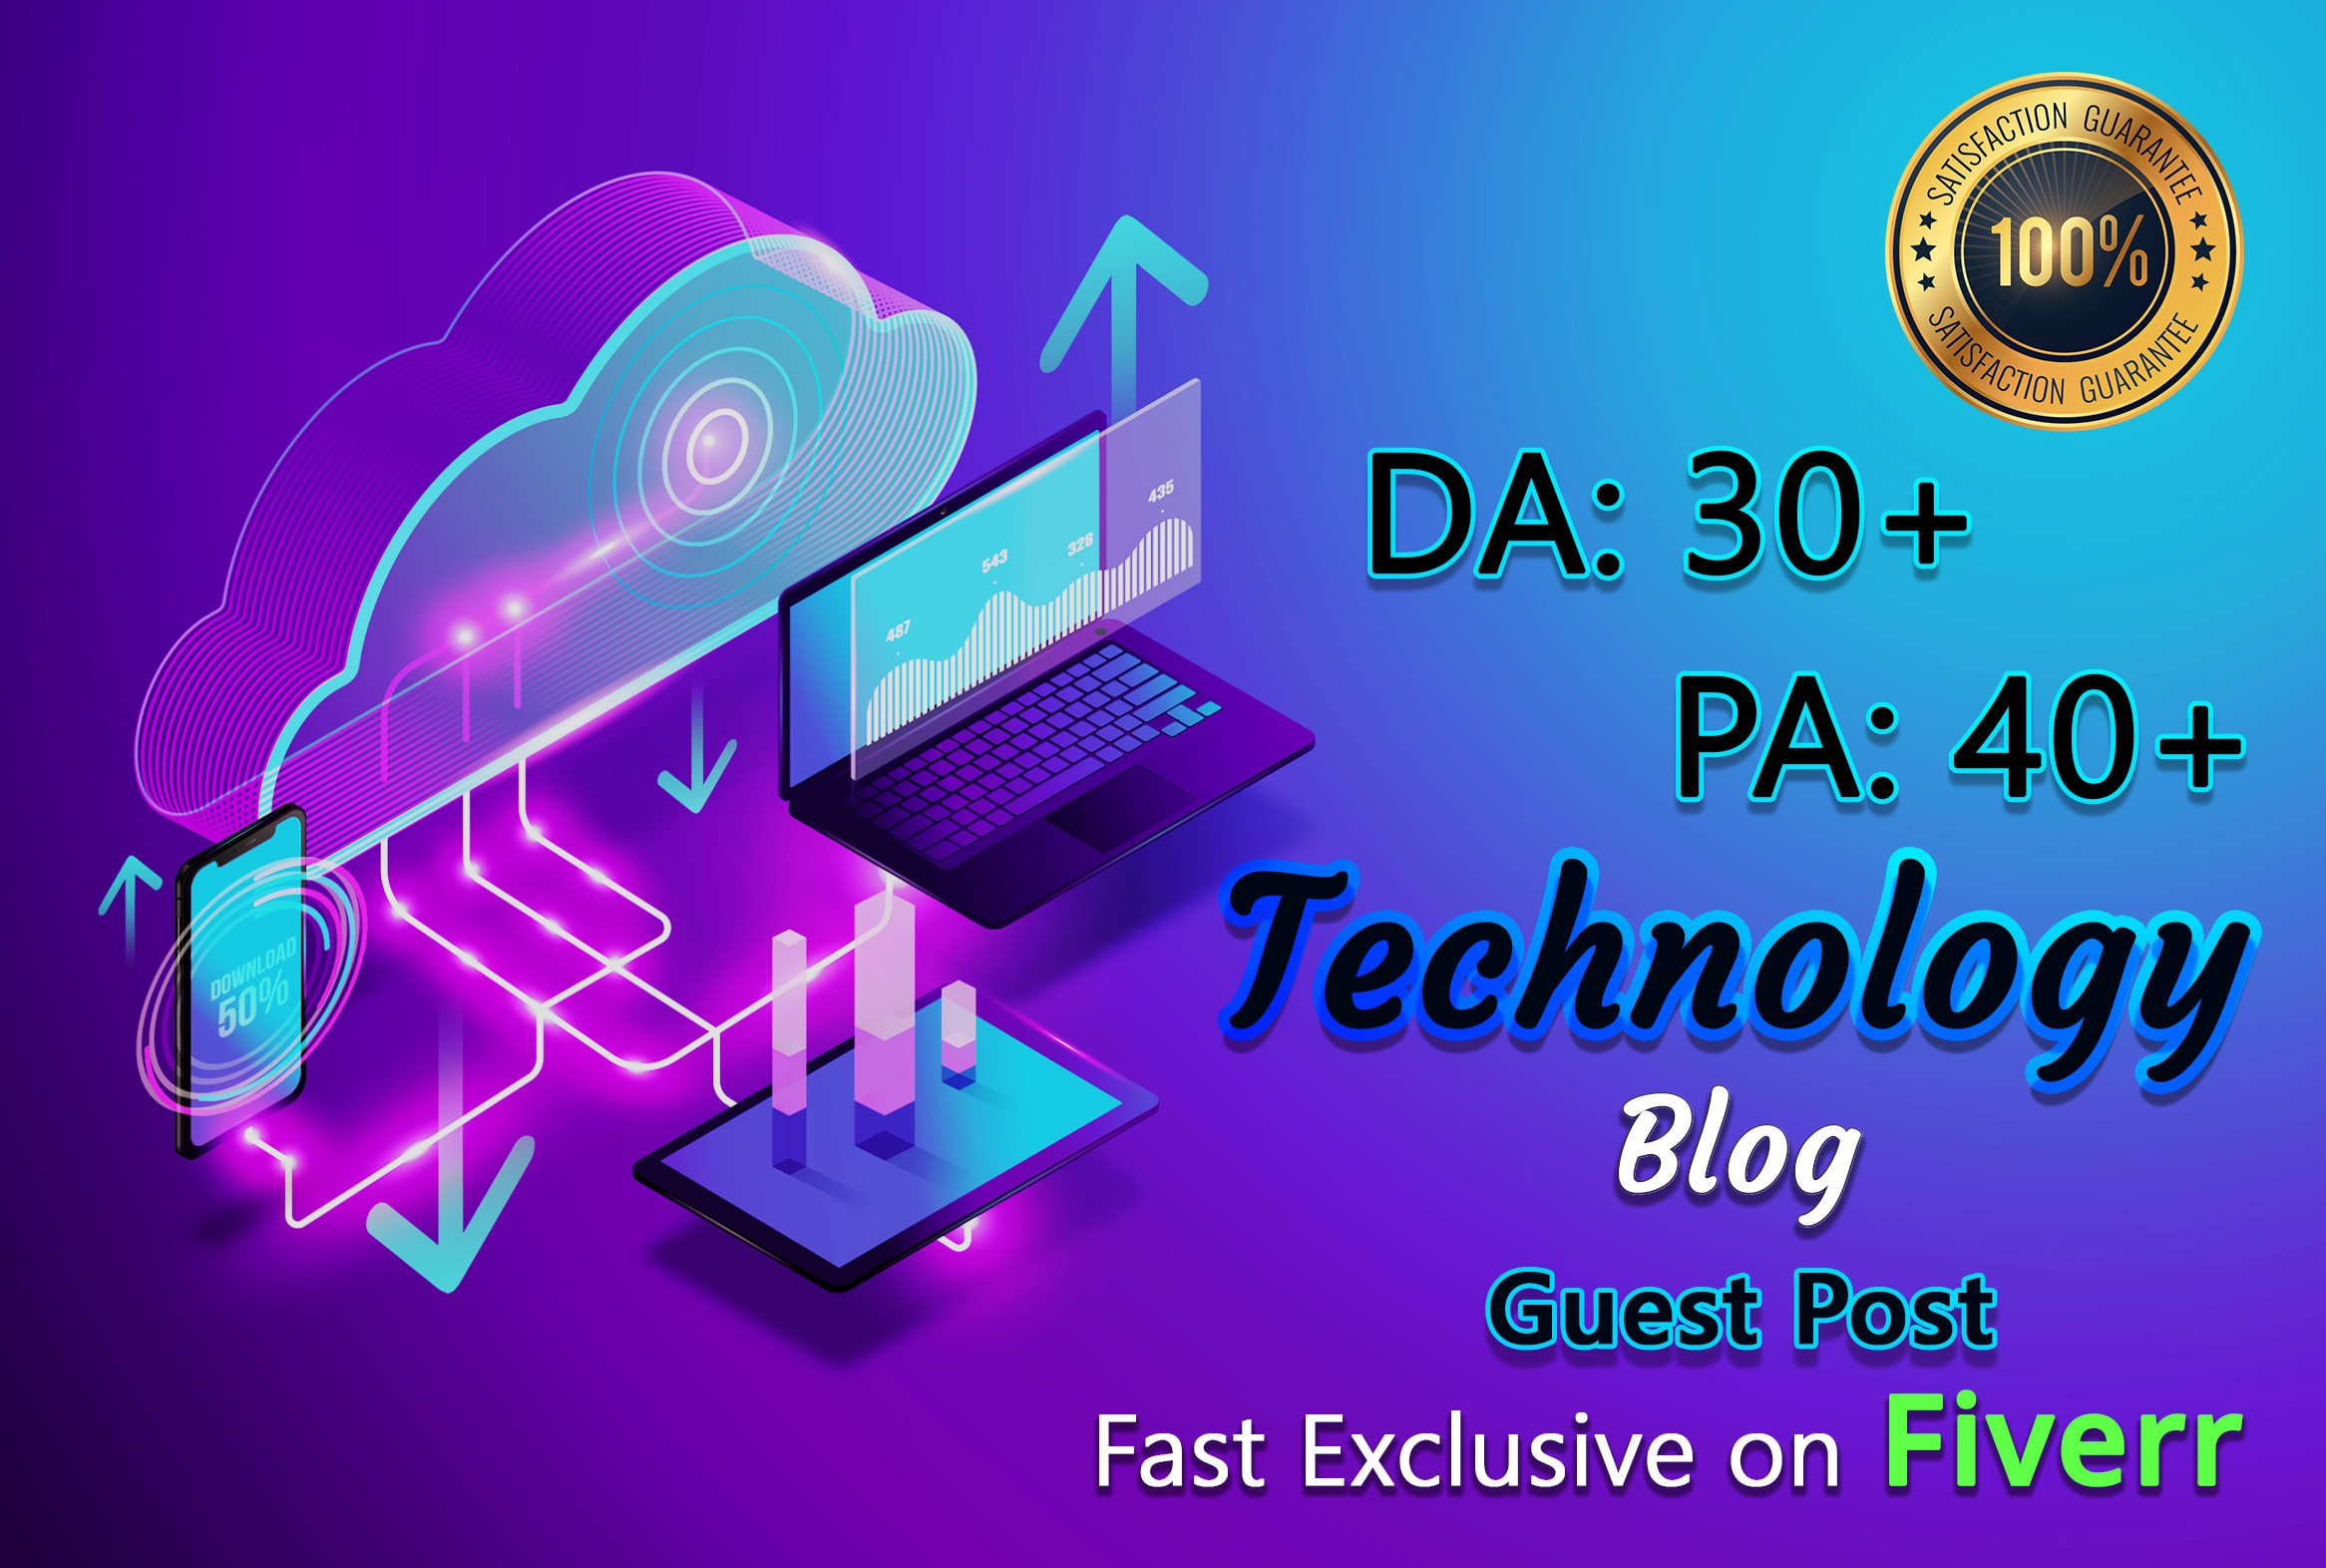 I will do guest post in technology blog